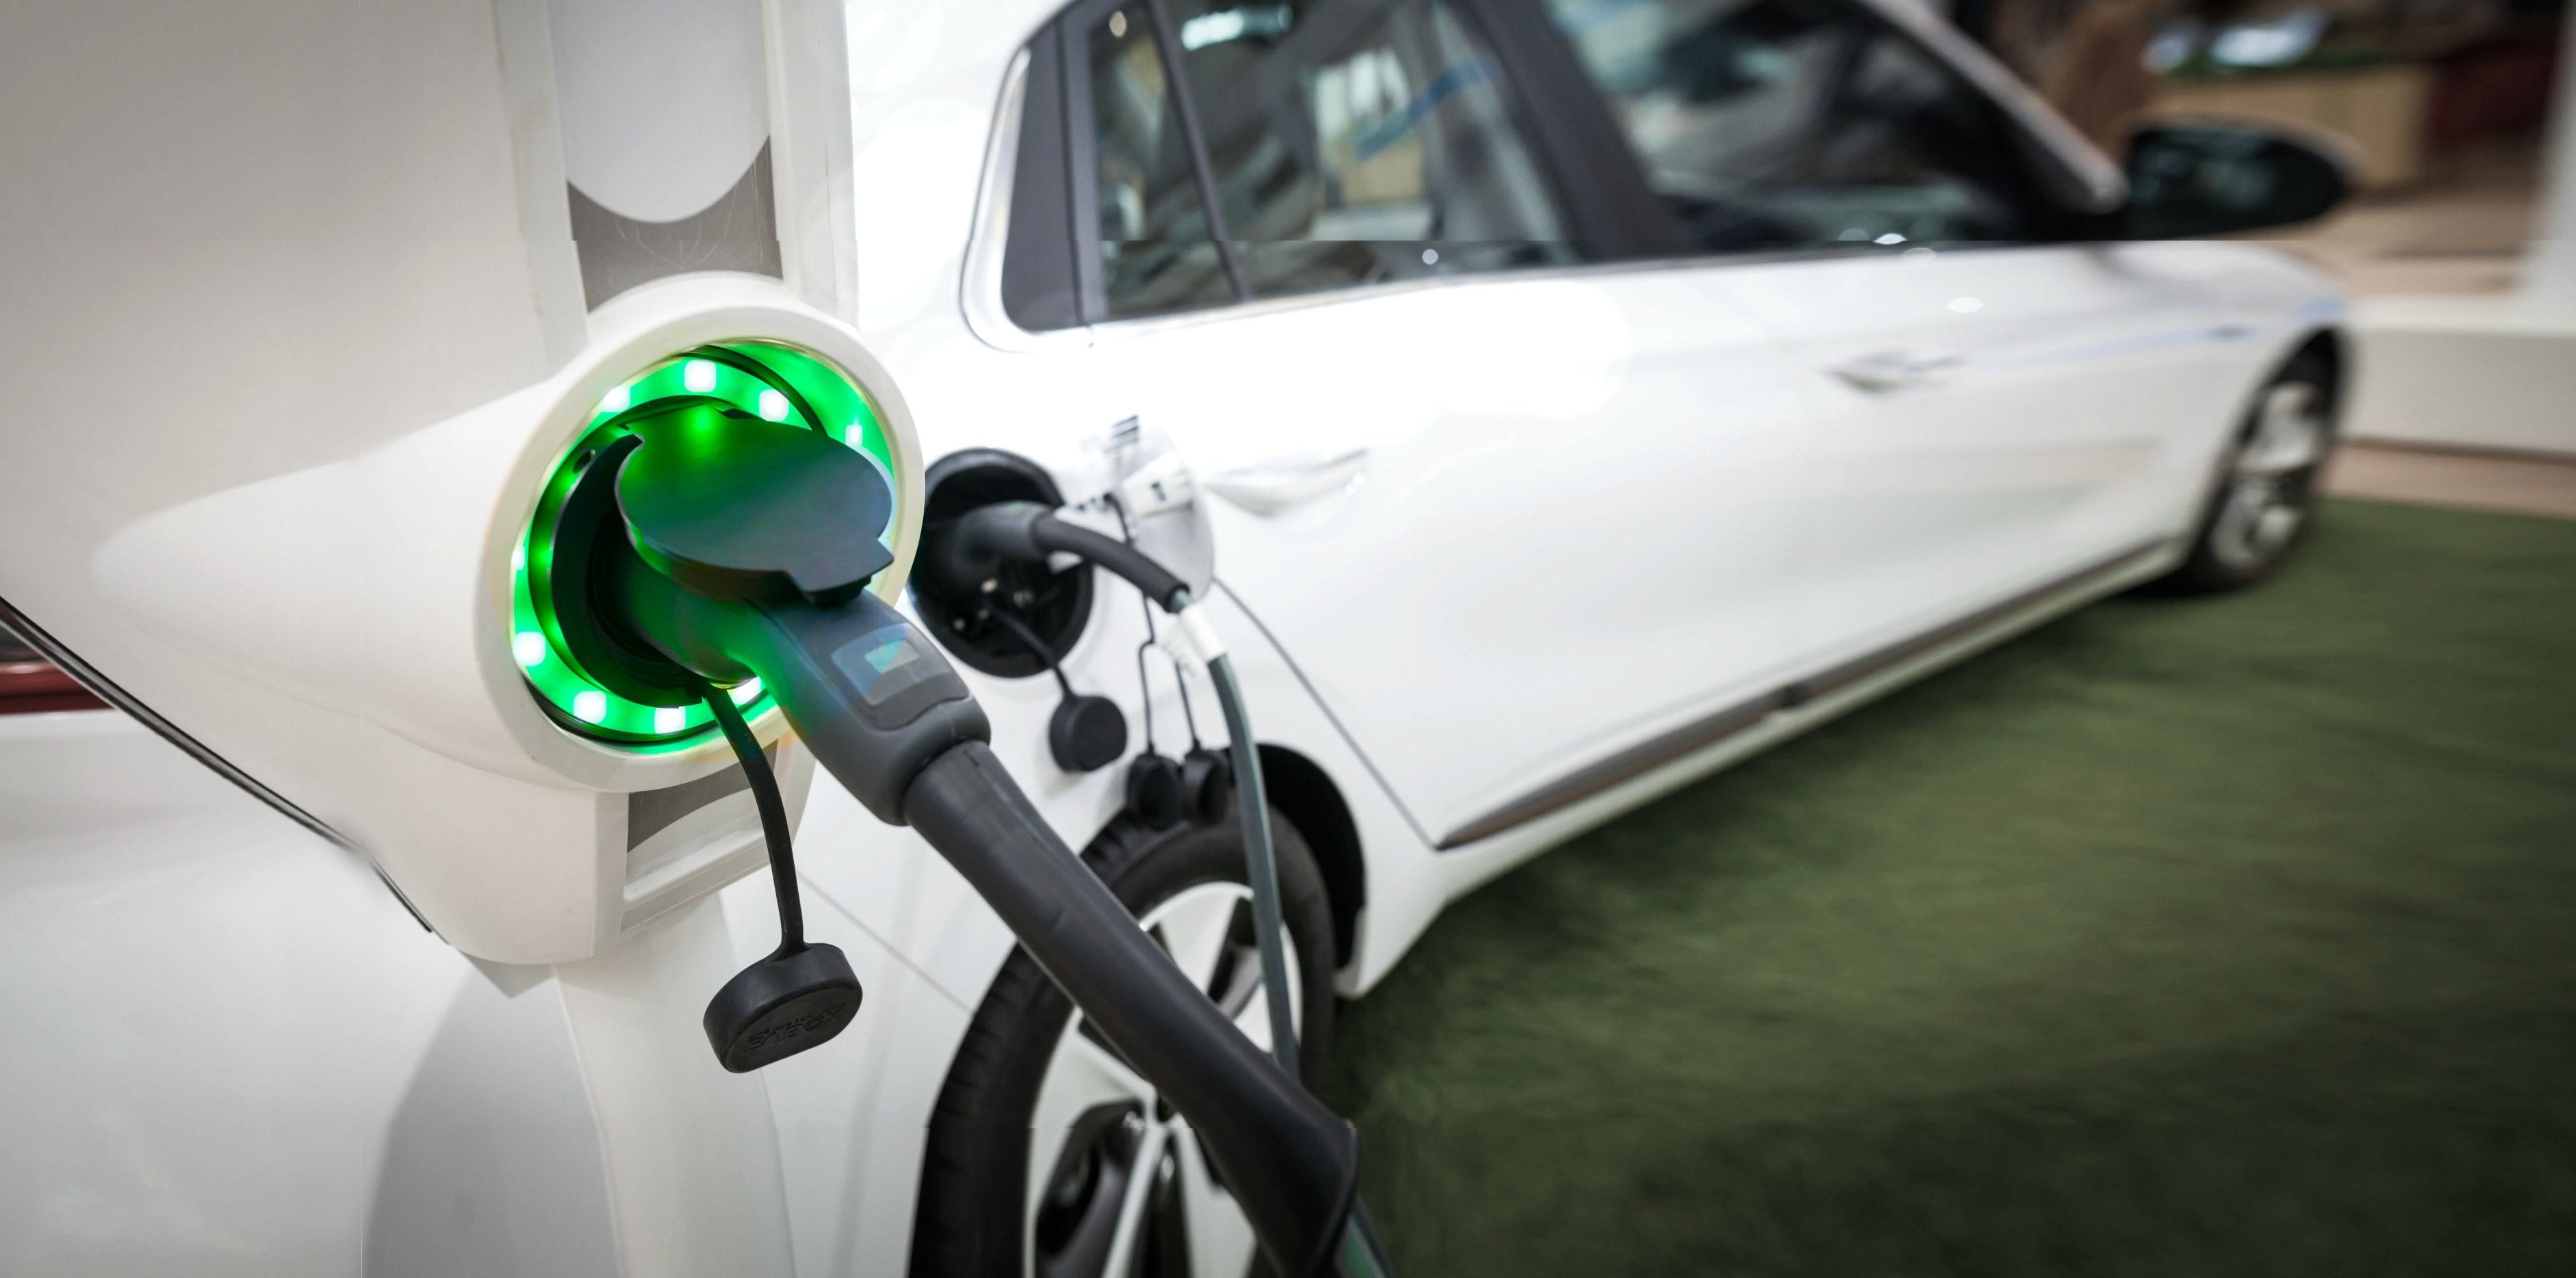 Victoria S Electric Vehicle Tax And The Theory Of The Second Best